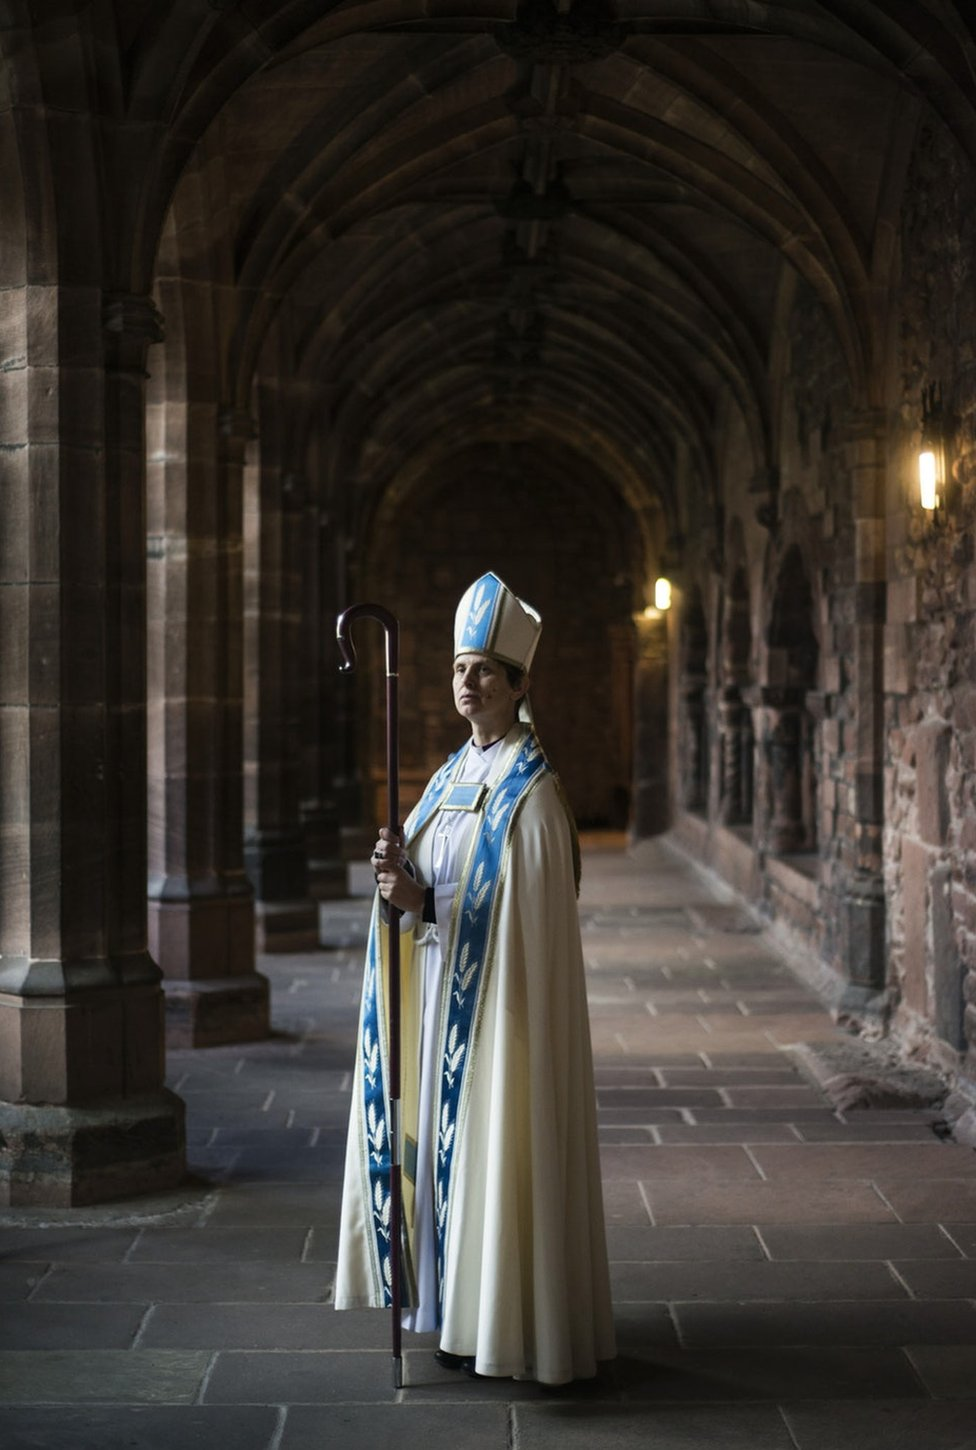 Portrait of a bishop in a church corridor